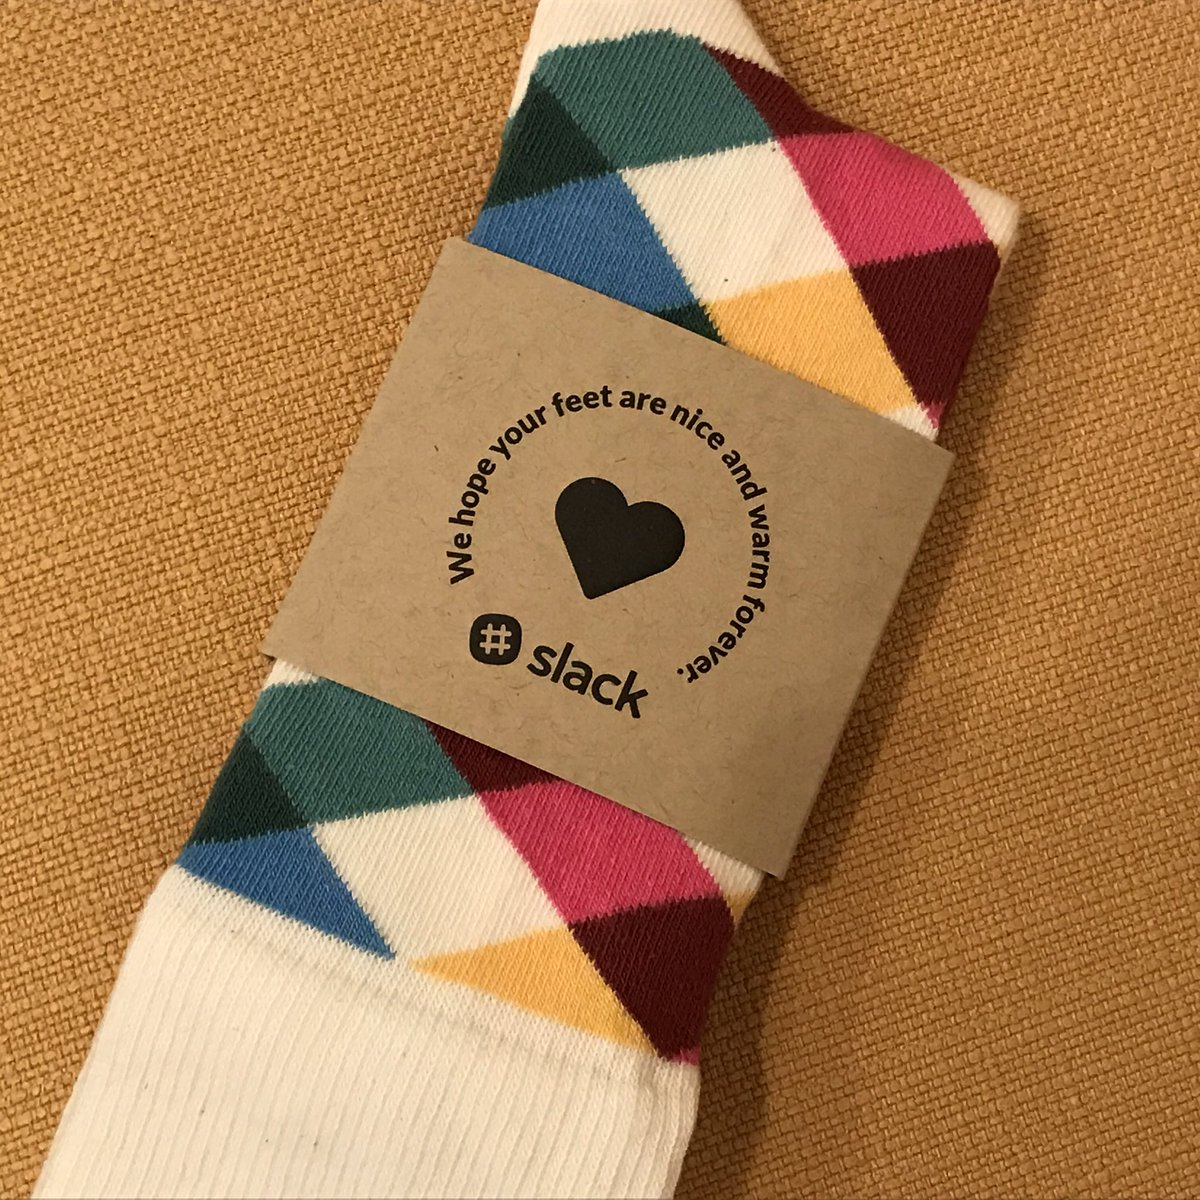 My new favorite socks. #slack @SlackHQ https://t.co/zY1DKSowNu